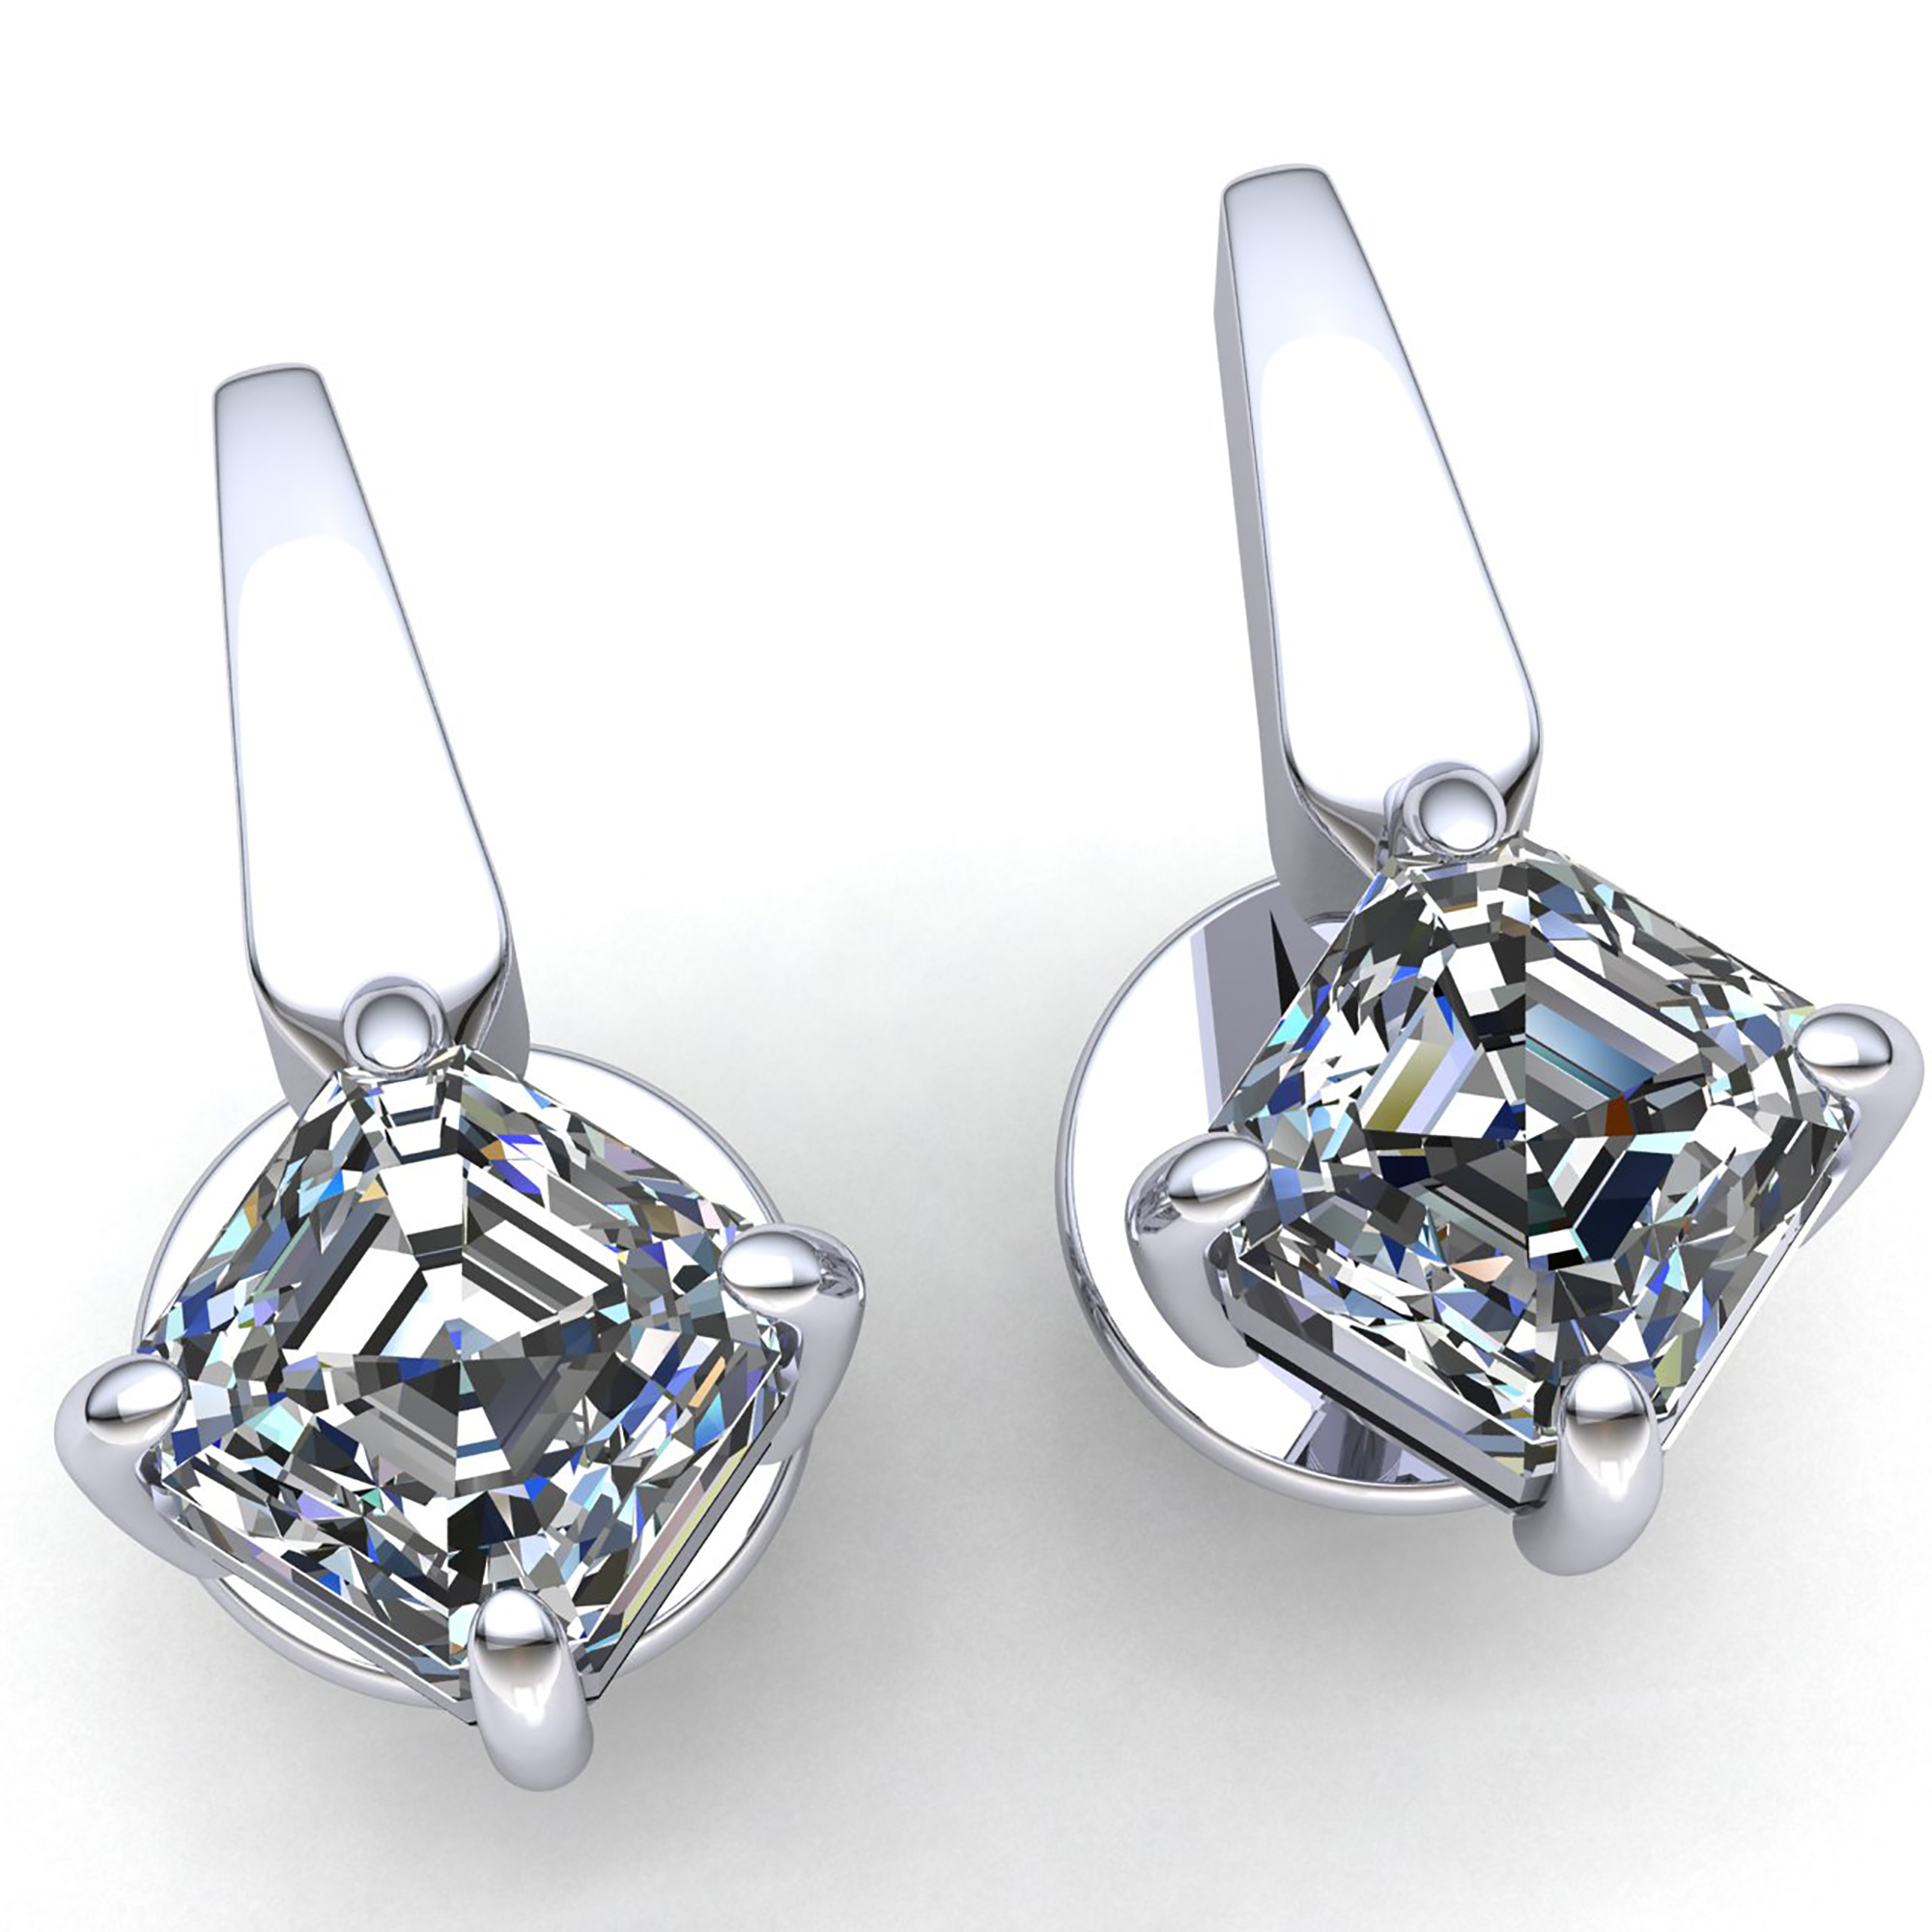 platinum bjs jewelry earrings round wholesale stud solitaire in diamond profileid imageservice product home carat club undefined recipeid imageid